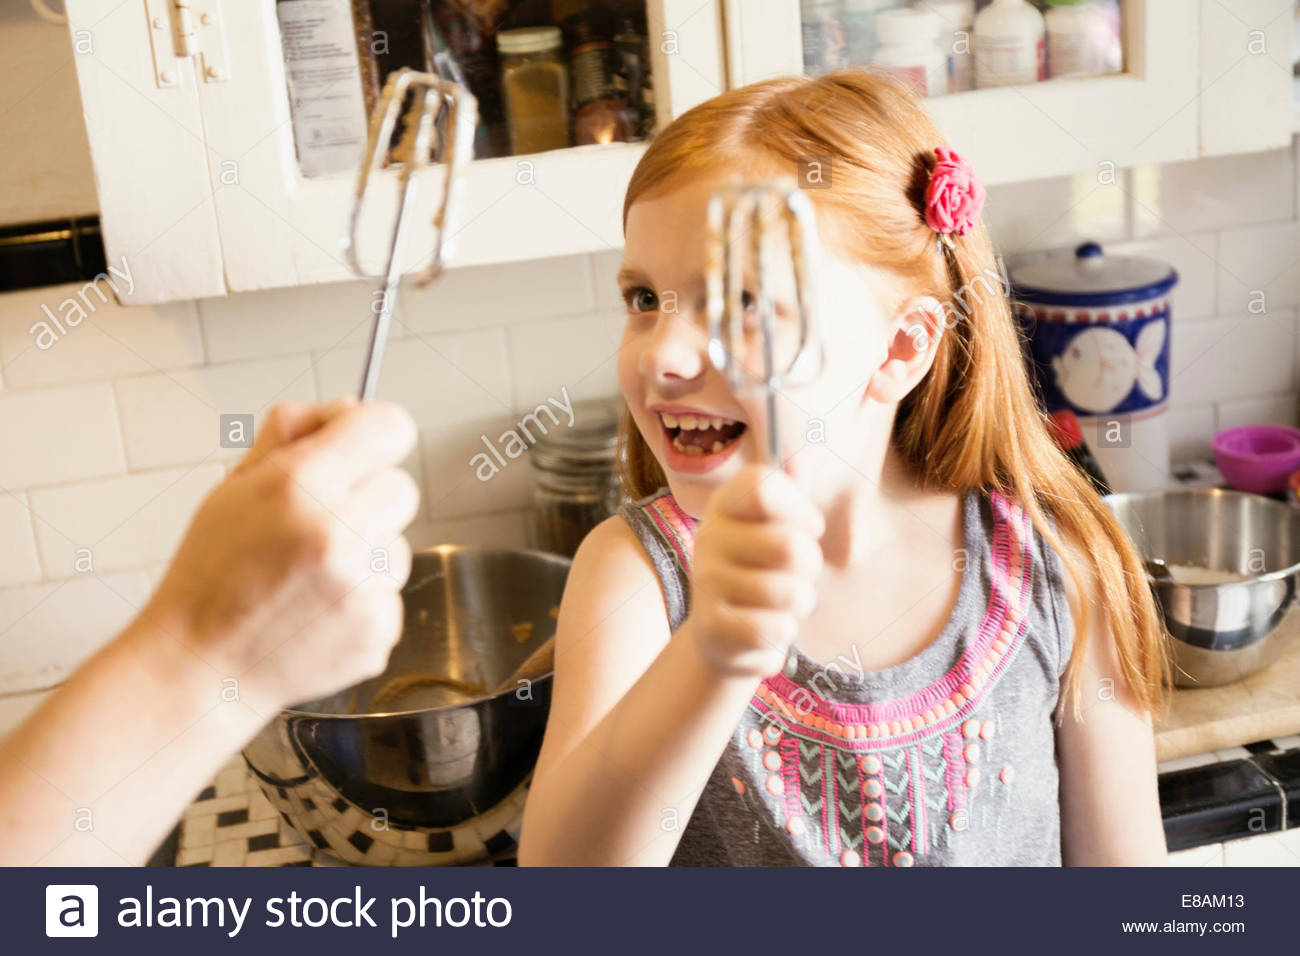 Girl and mother holding up whisks in kitchen - Stock Image